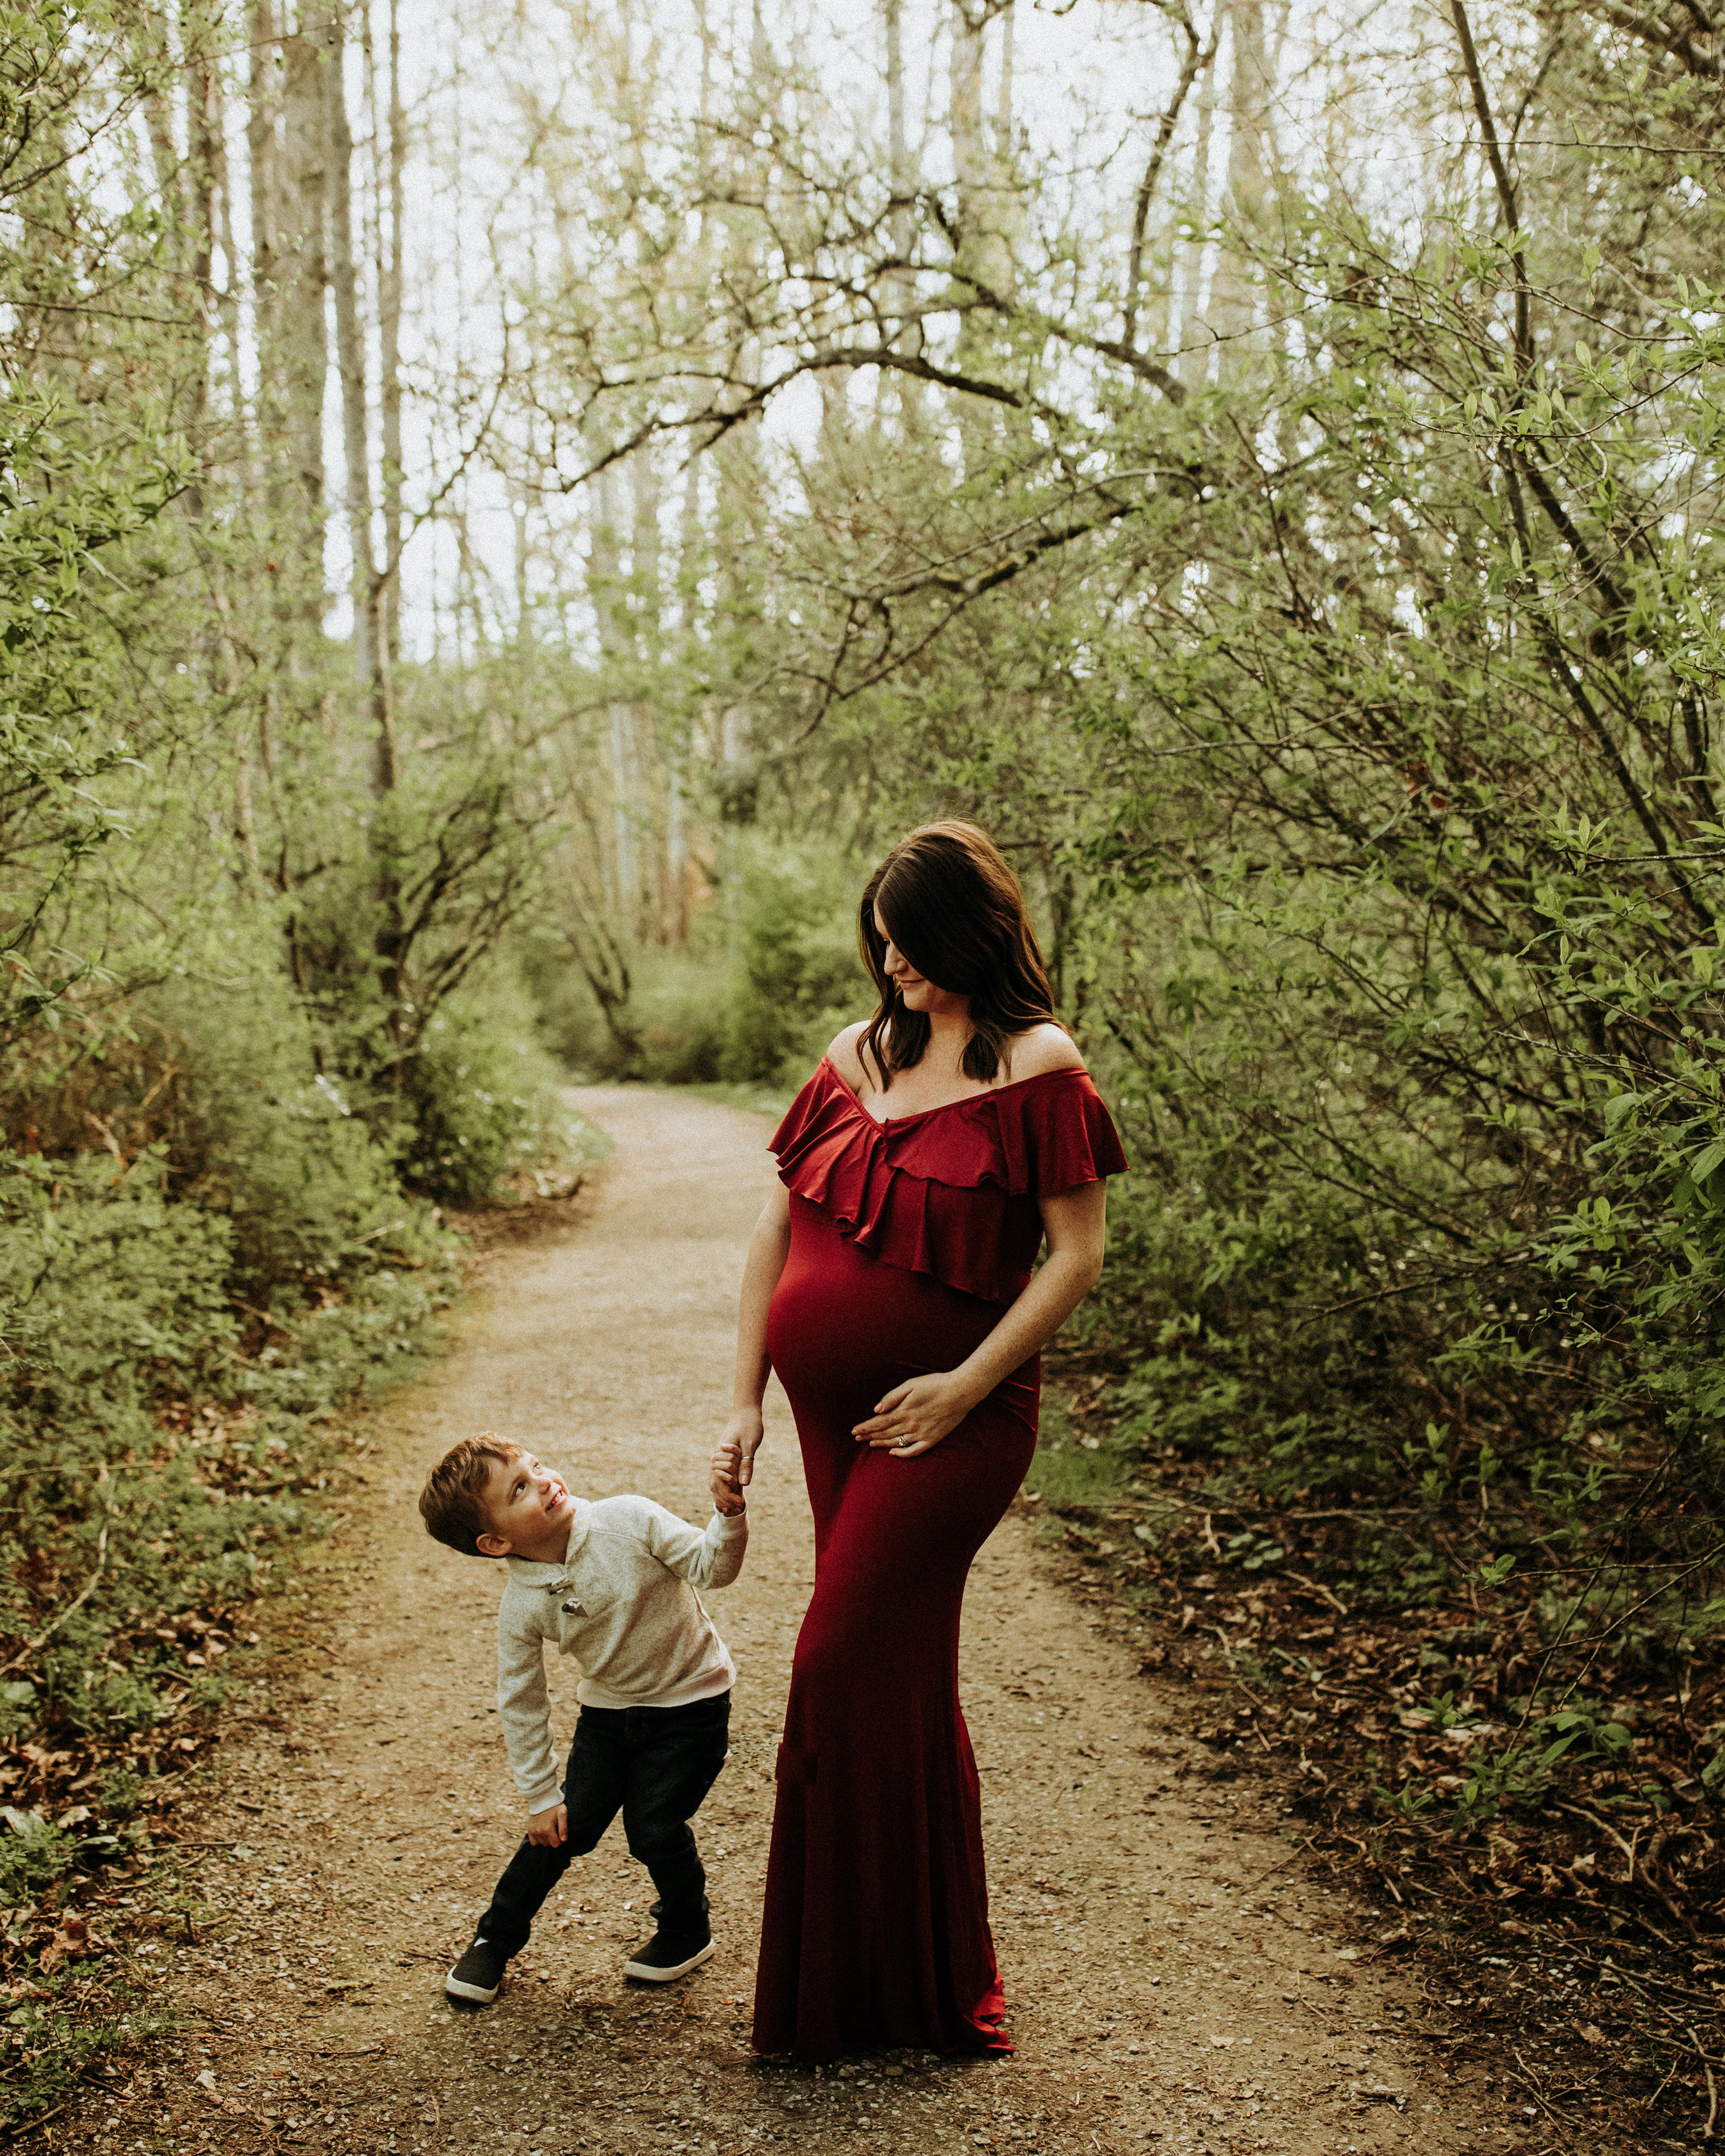 Maternity-Photographer-Bellingham-WA-Brianne-Bell-Photograpy-(Kaitlin)-68.jpg